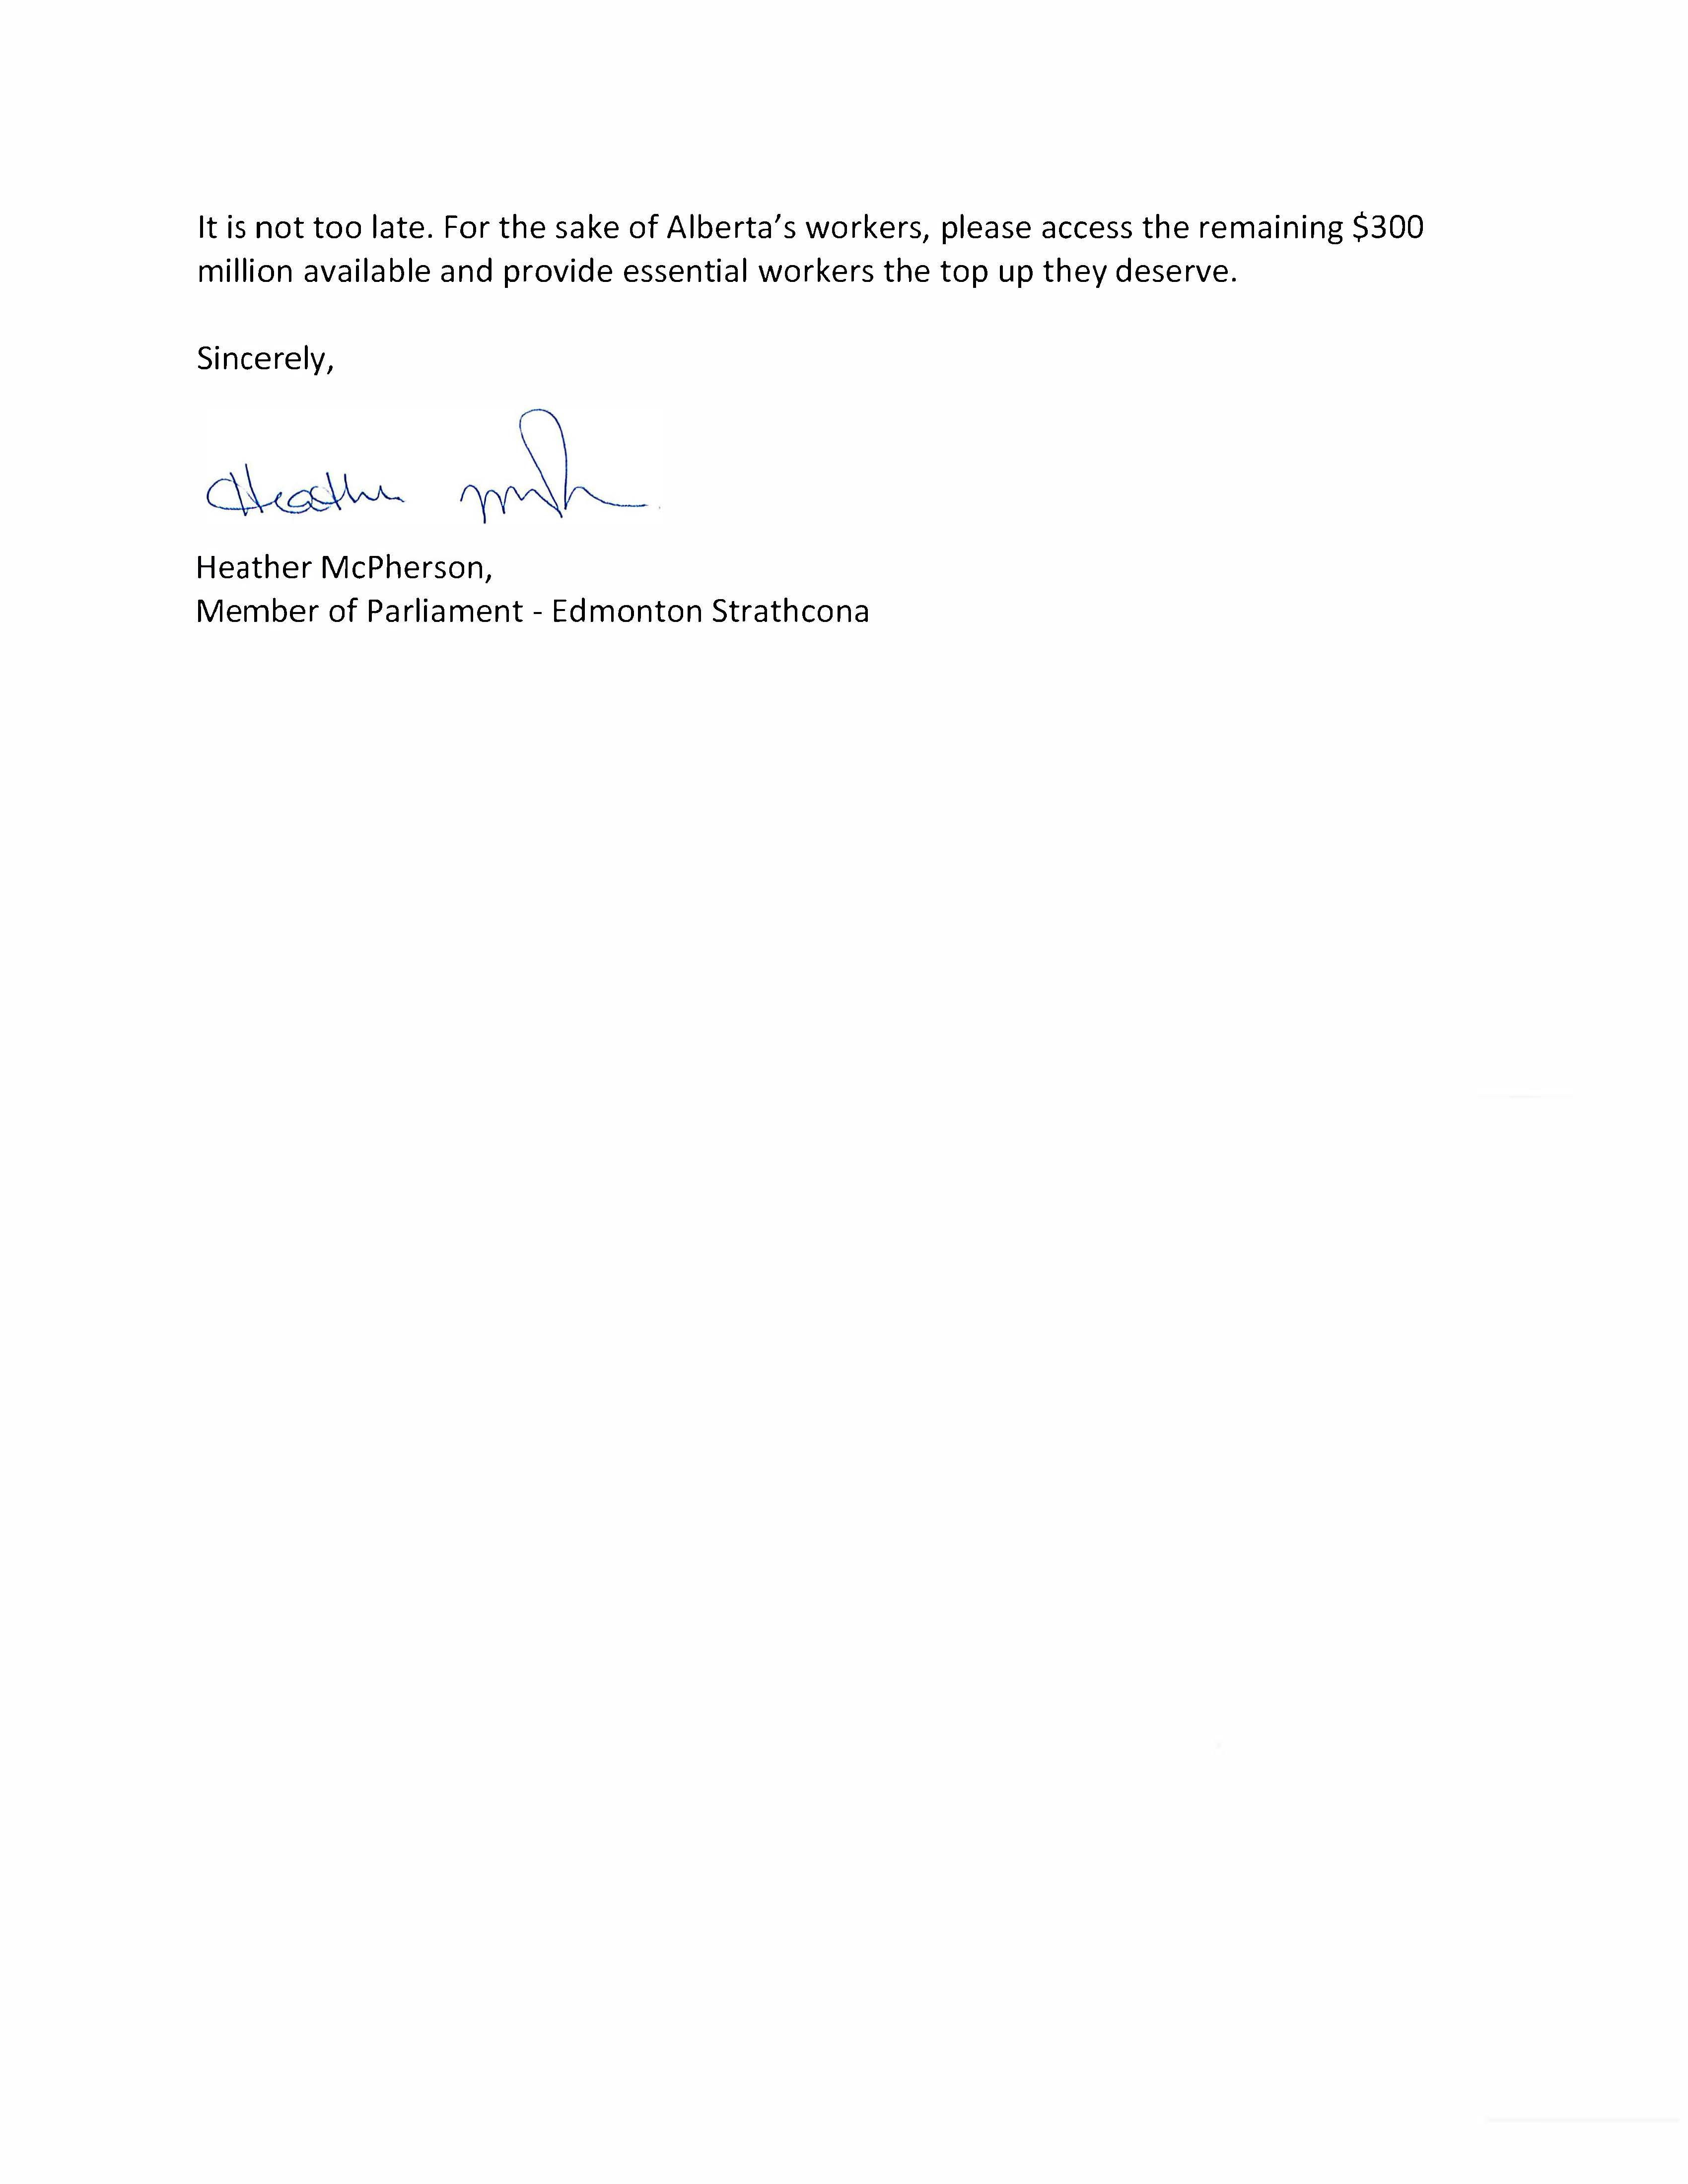 Letter to Premier Kenney Page 2